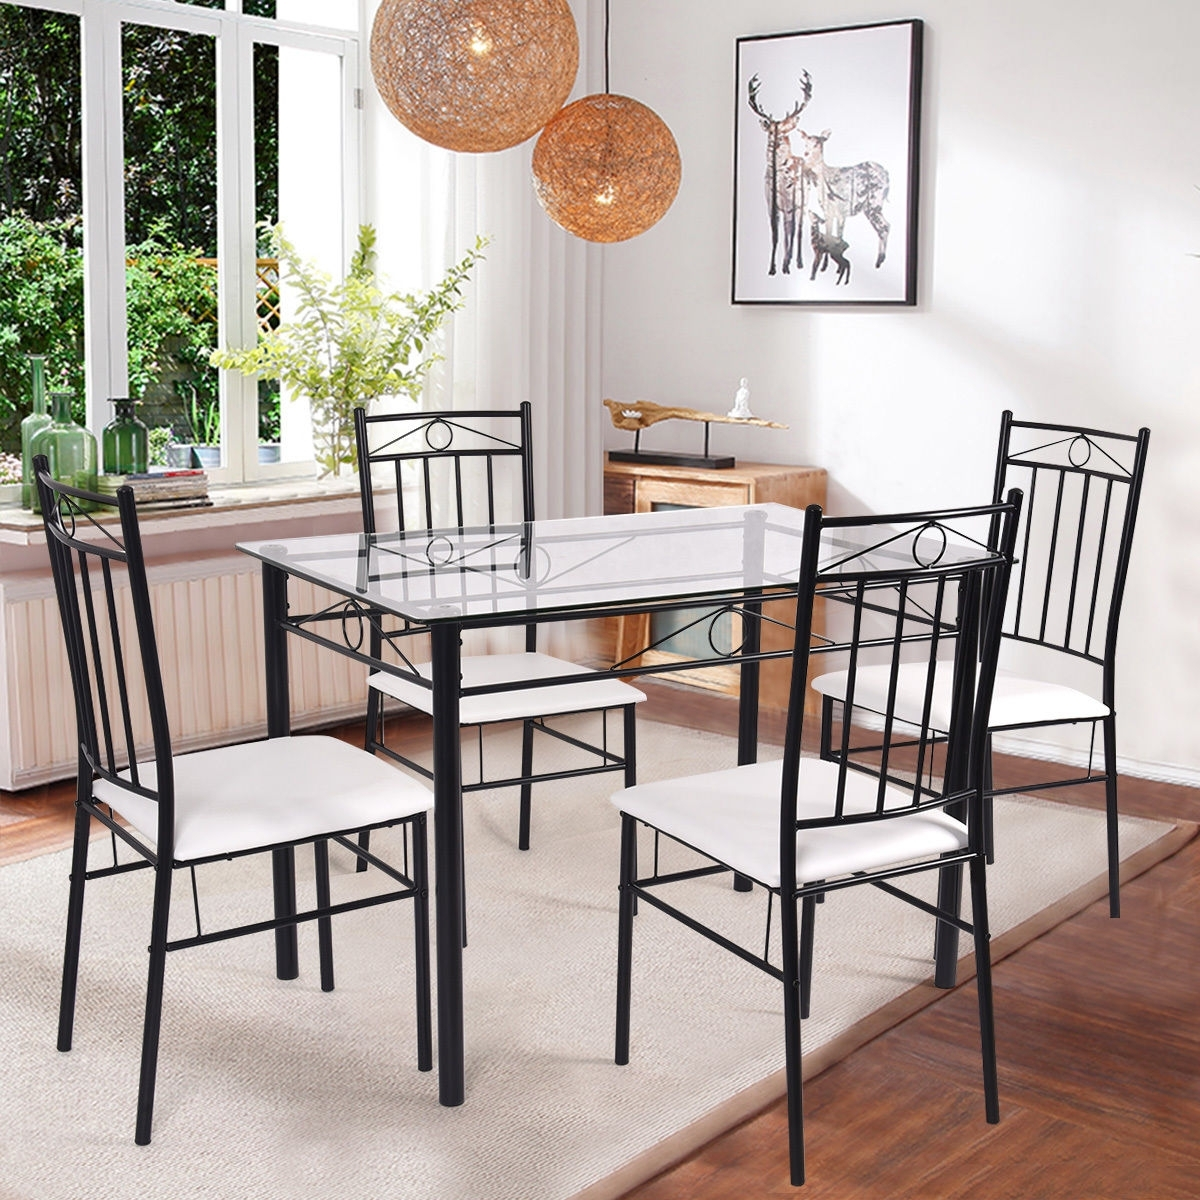 Popular Black Glass Dining Tables And 4 Chairs Pertaining To Costway 5 Piece Dining Set Glass Metal Table And 4 Chairs Kitchen Breakfast Furniture (View 13 of 25)